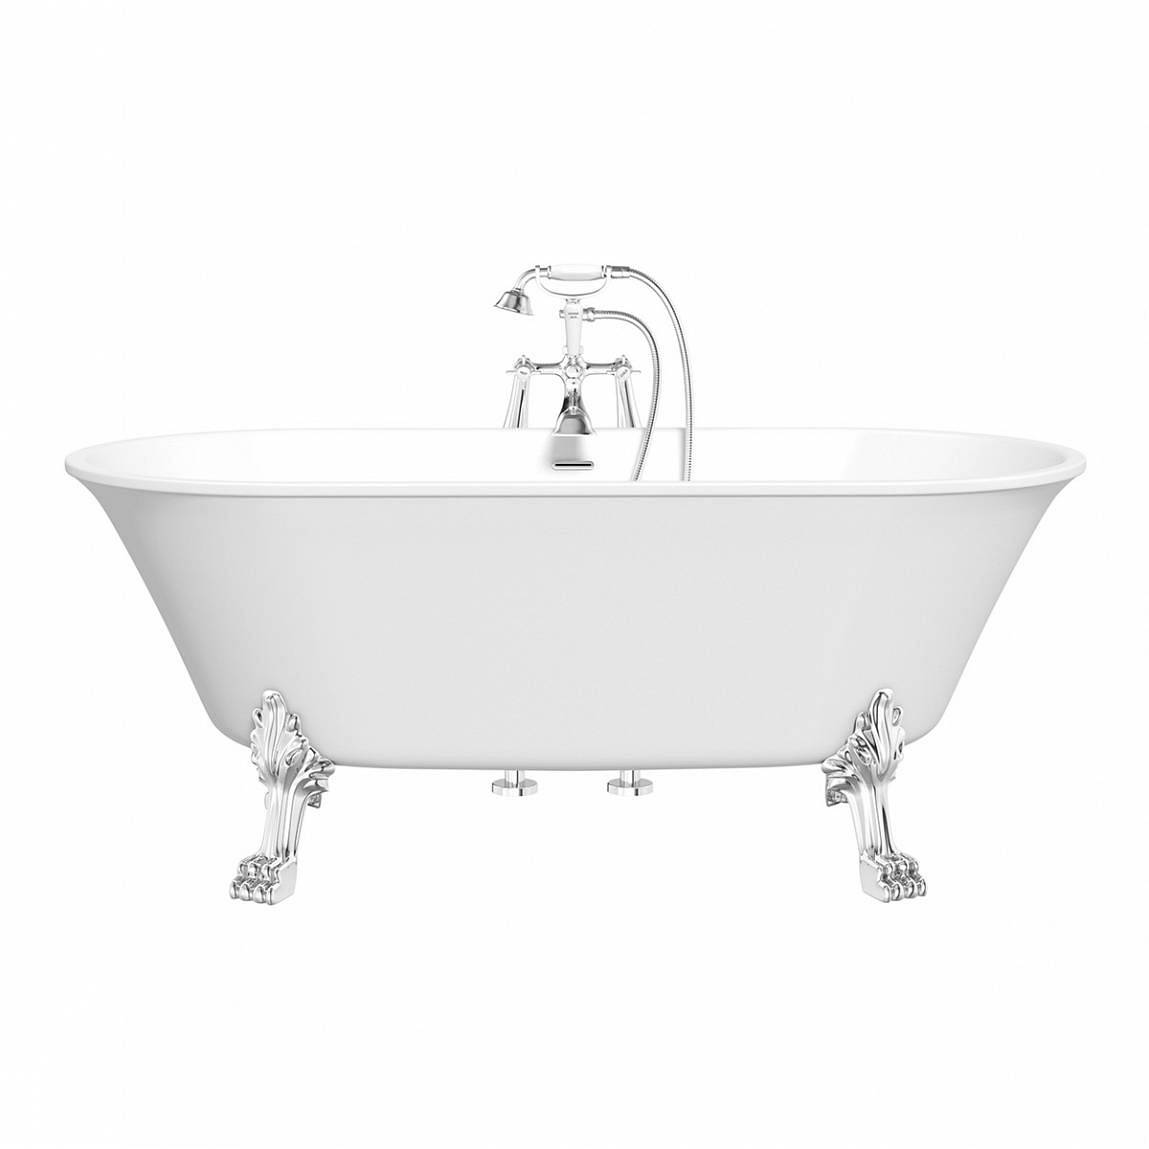 Image of Camberley Roll Top Bath with Dragon Feet